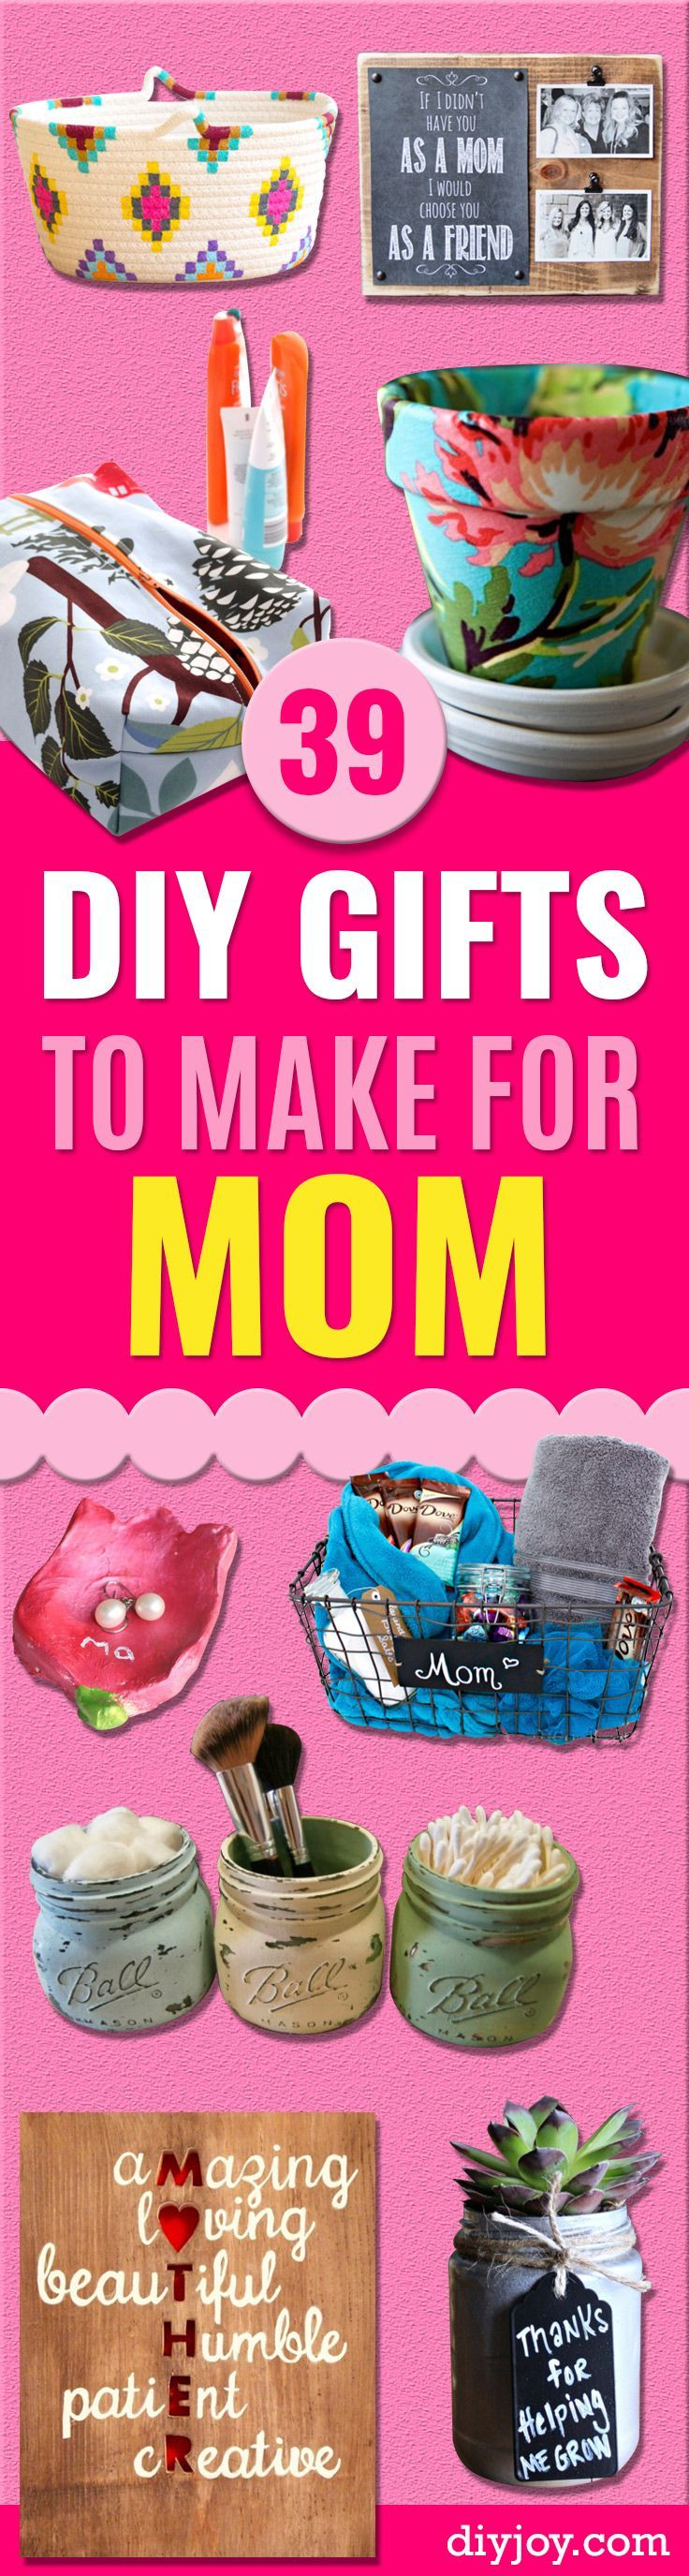 17 best ideas about diy gifts for mom on pinterest mom